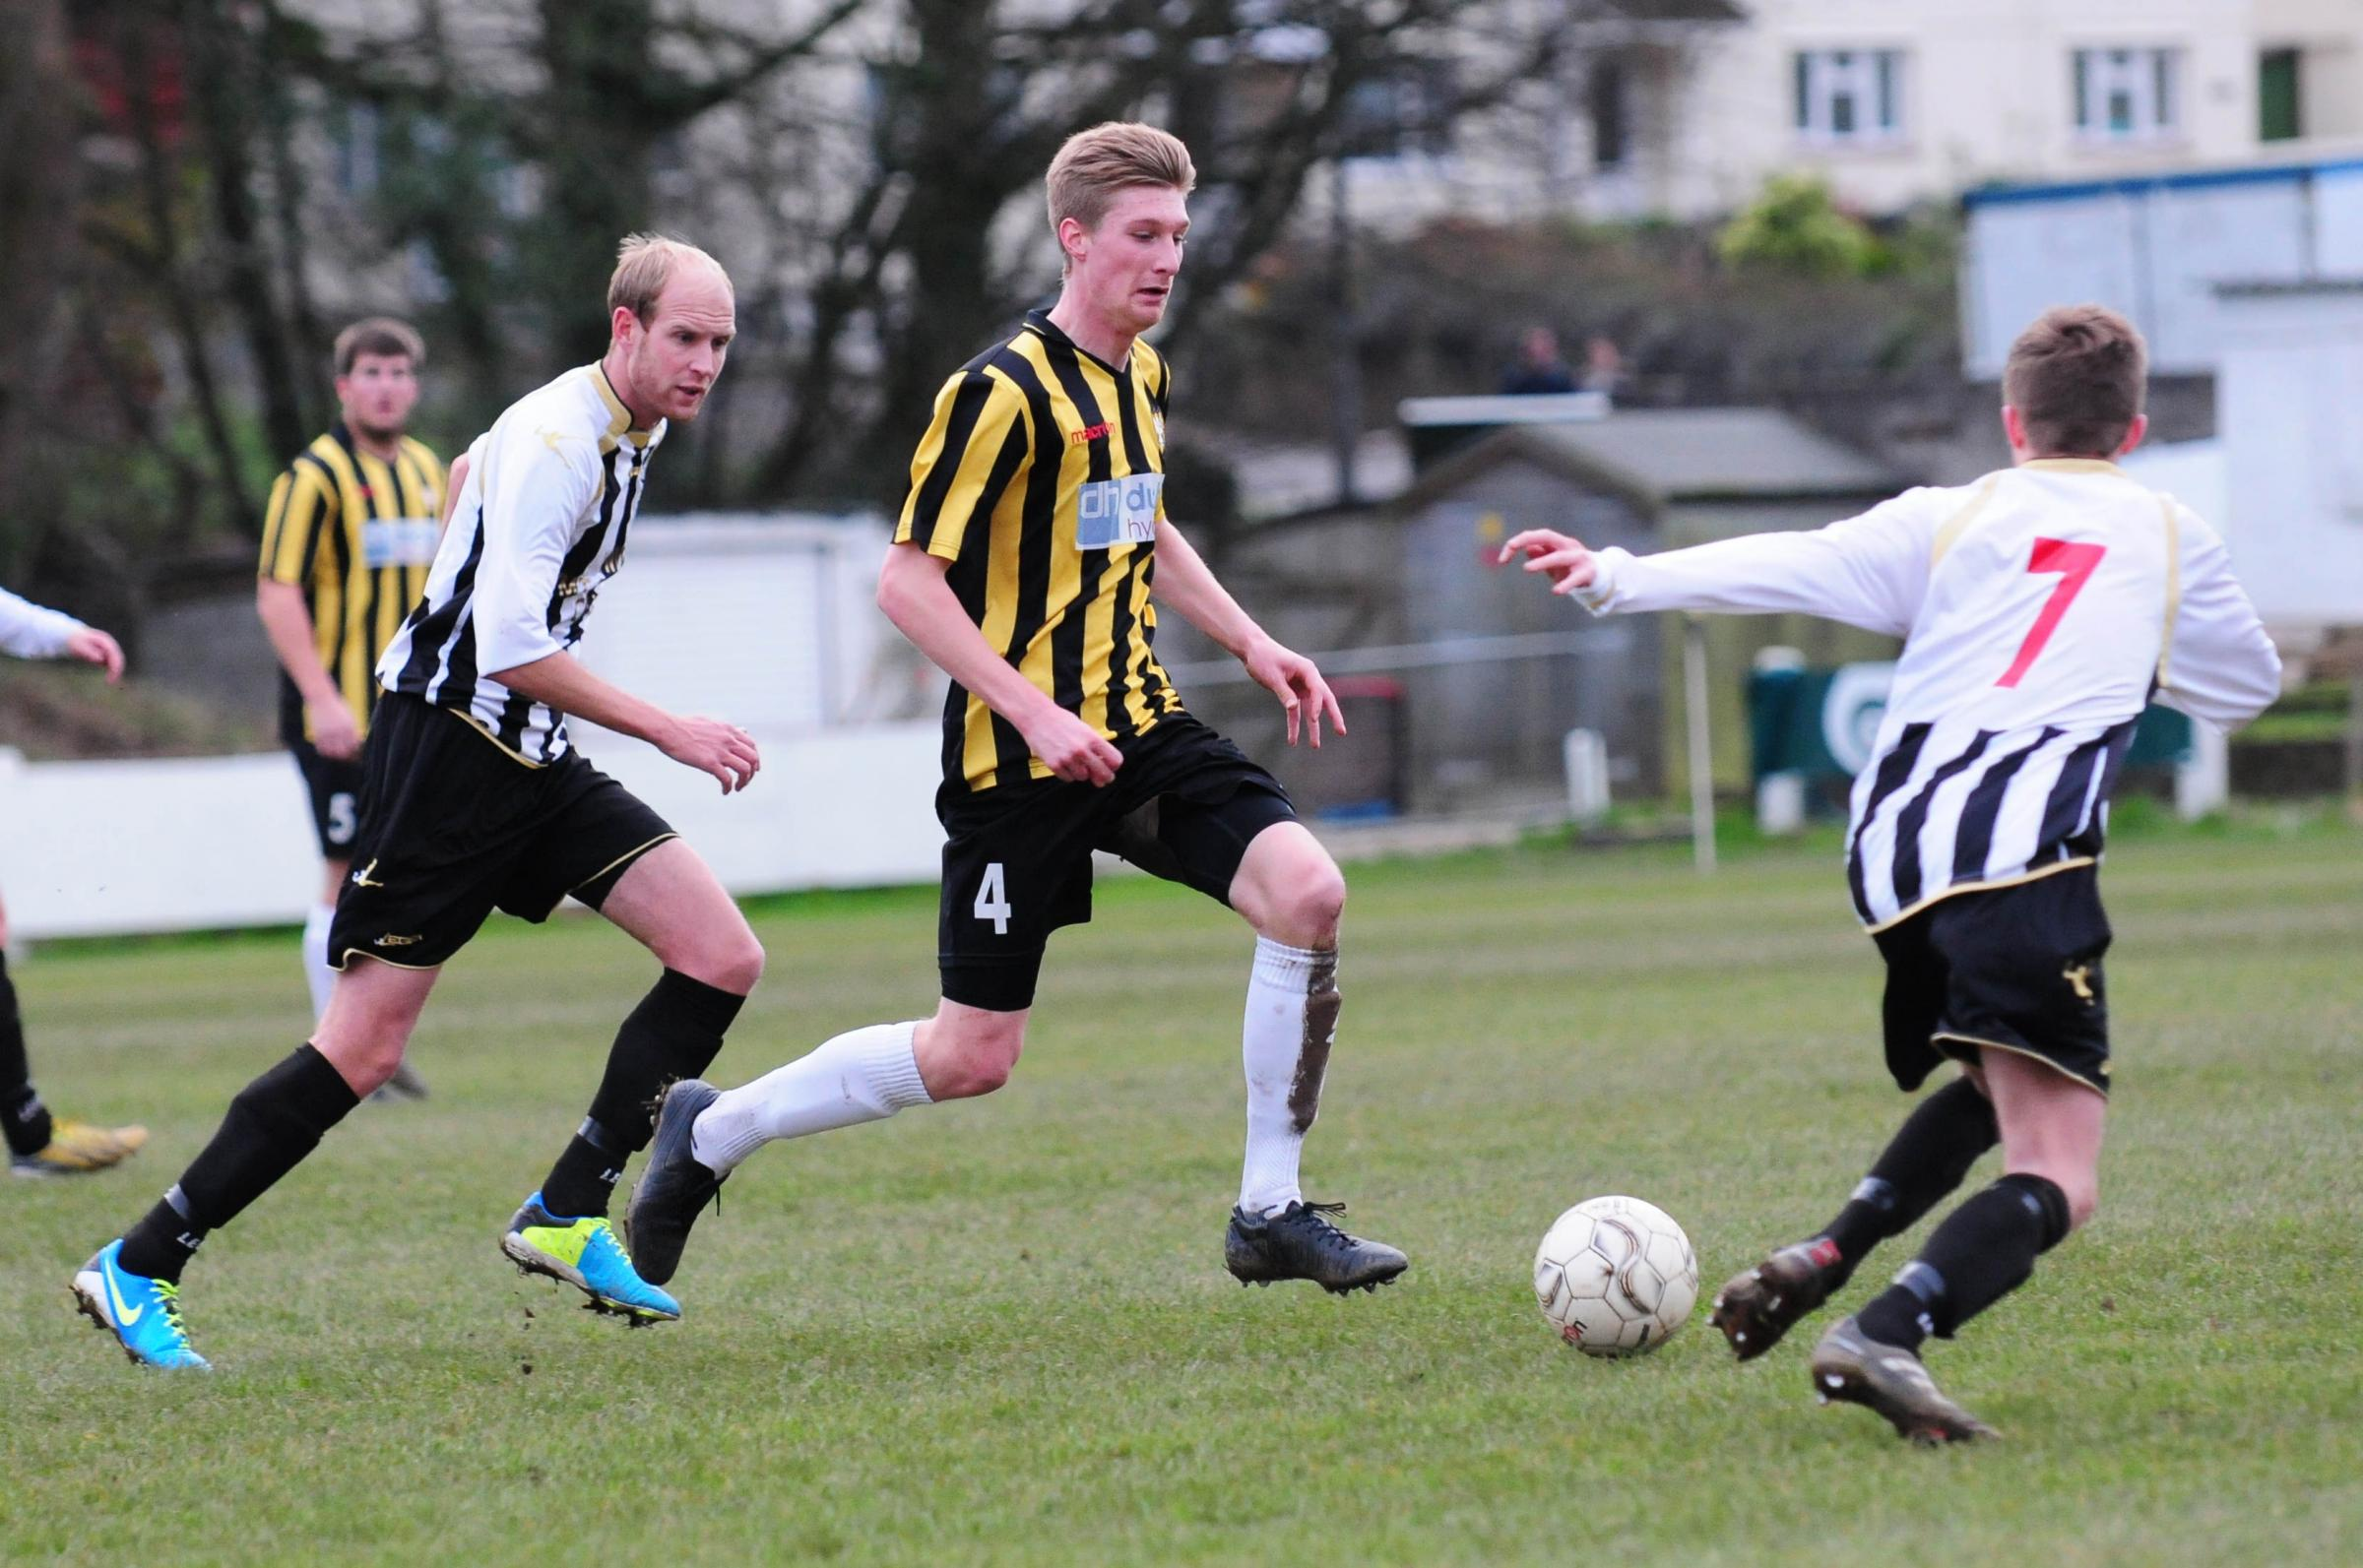 Town reserves beaten by Illogan, but Porthleven secure vital win over Penryn - JCCL, December 7. Picture: Phil Ruberry.